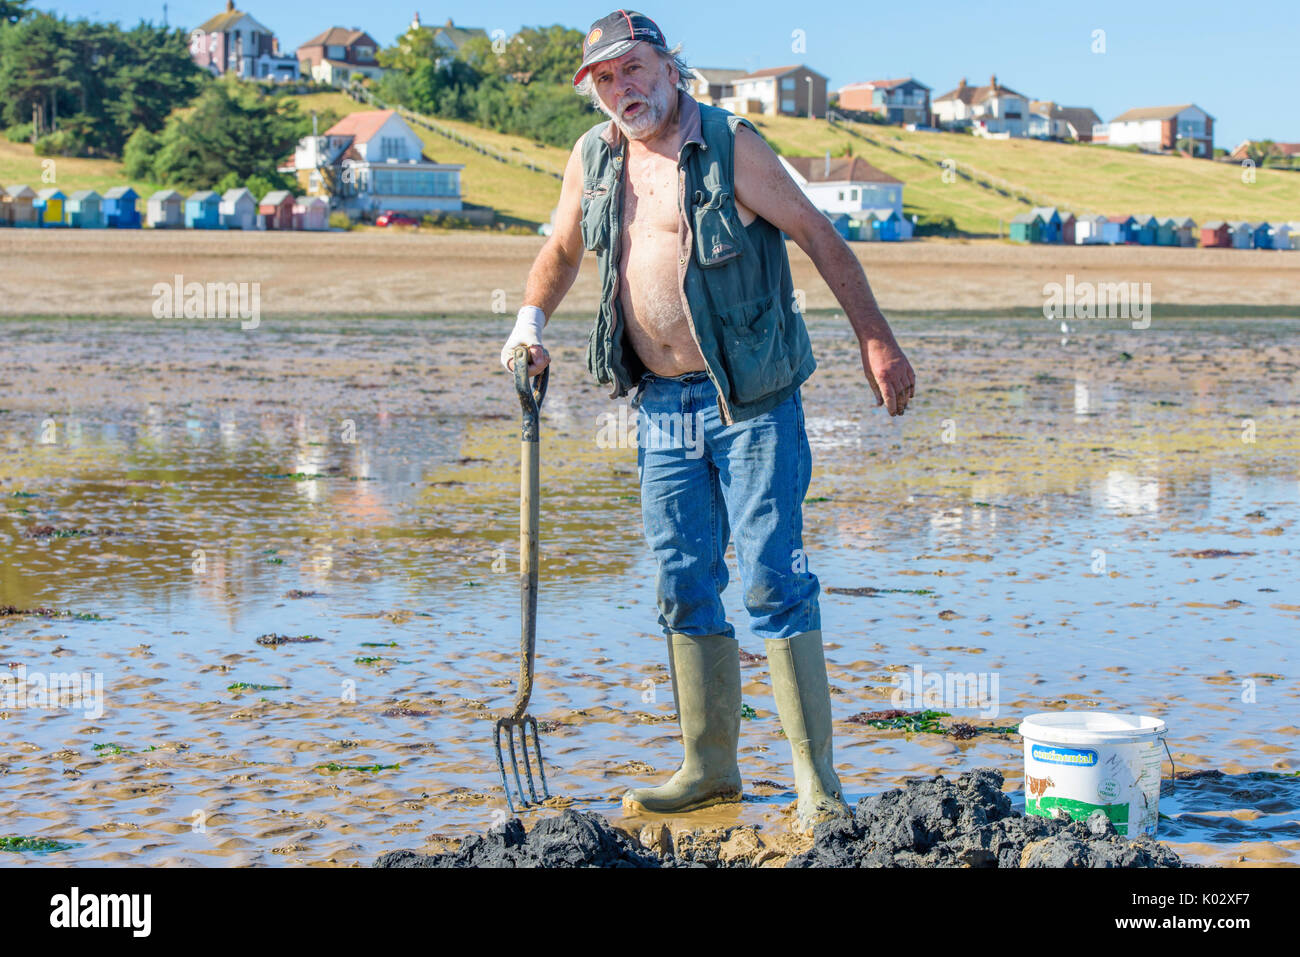 Lone fisherman digging for lugworms  to use for fishing bait on the beach at Herne Bay, Kent, England, UK. - Stock Image